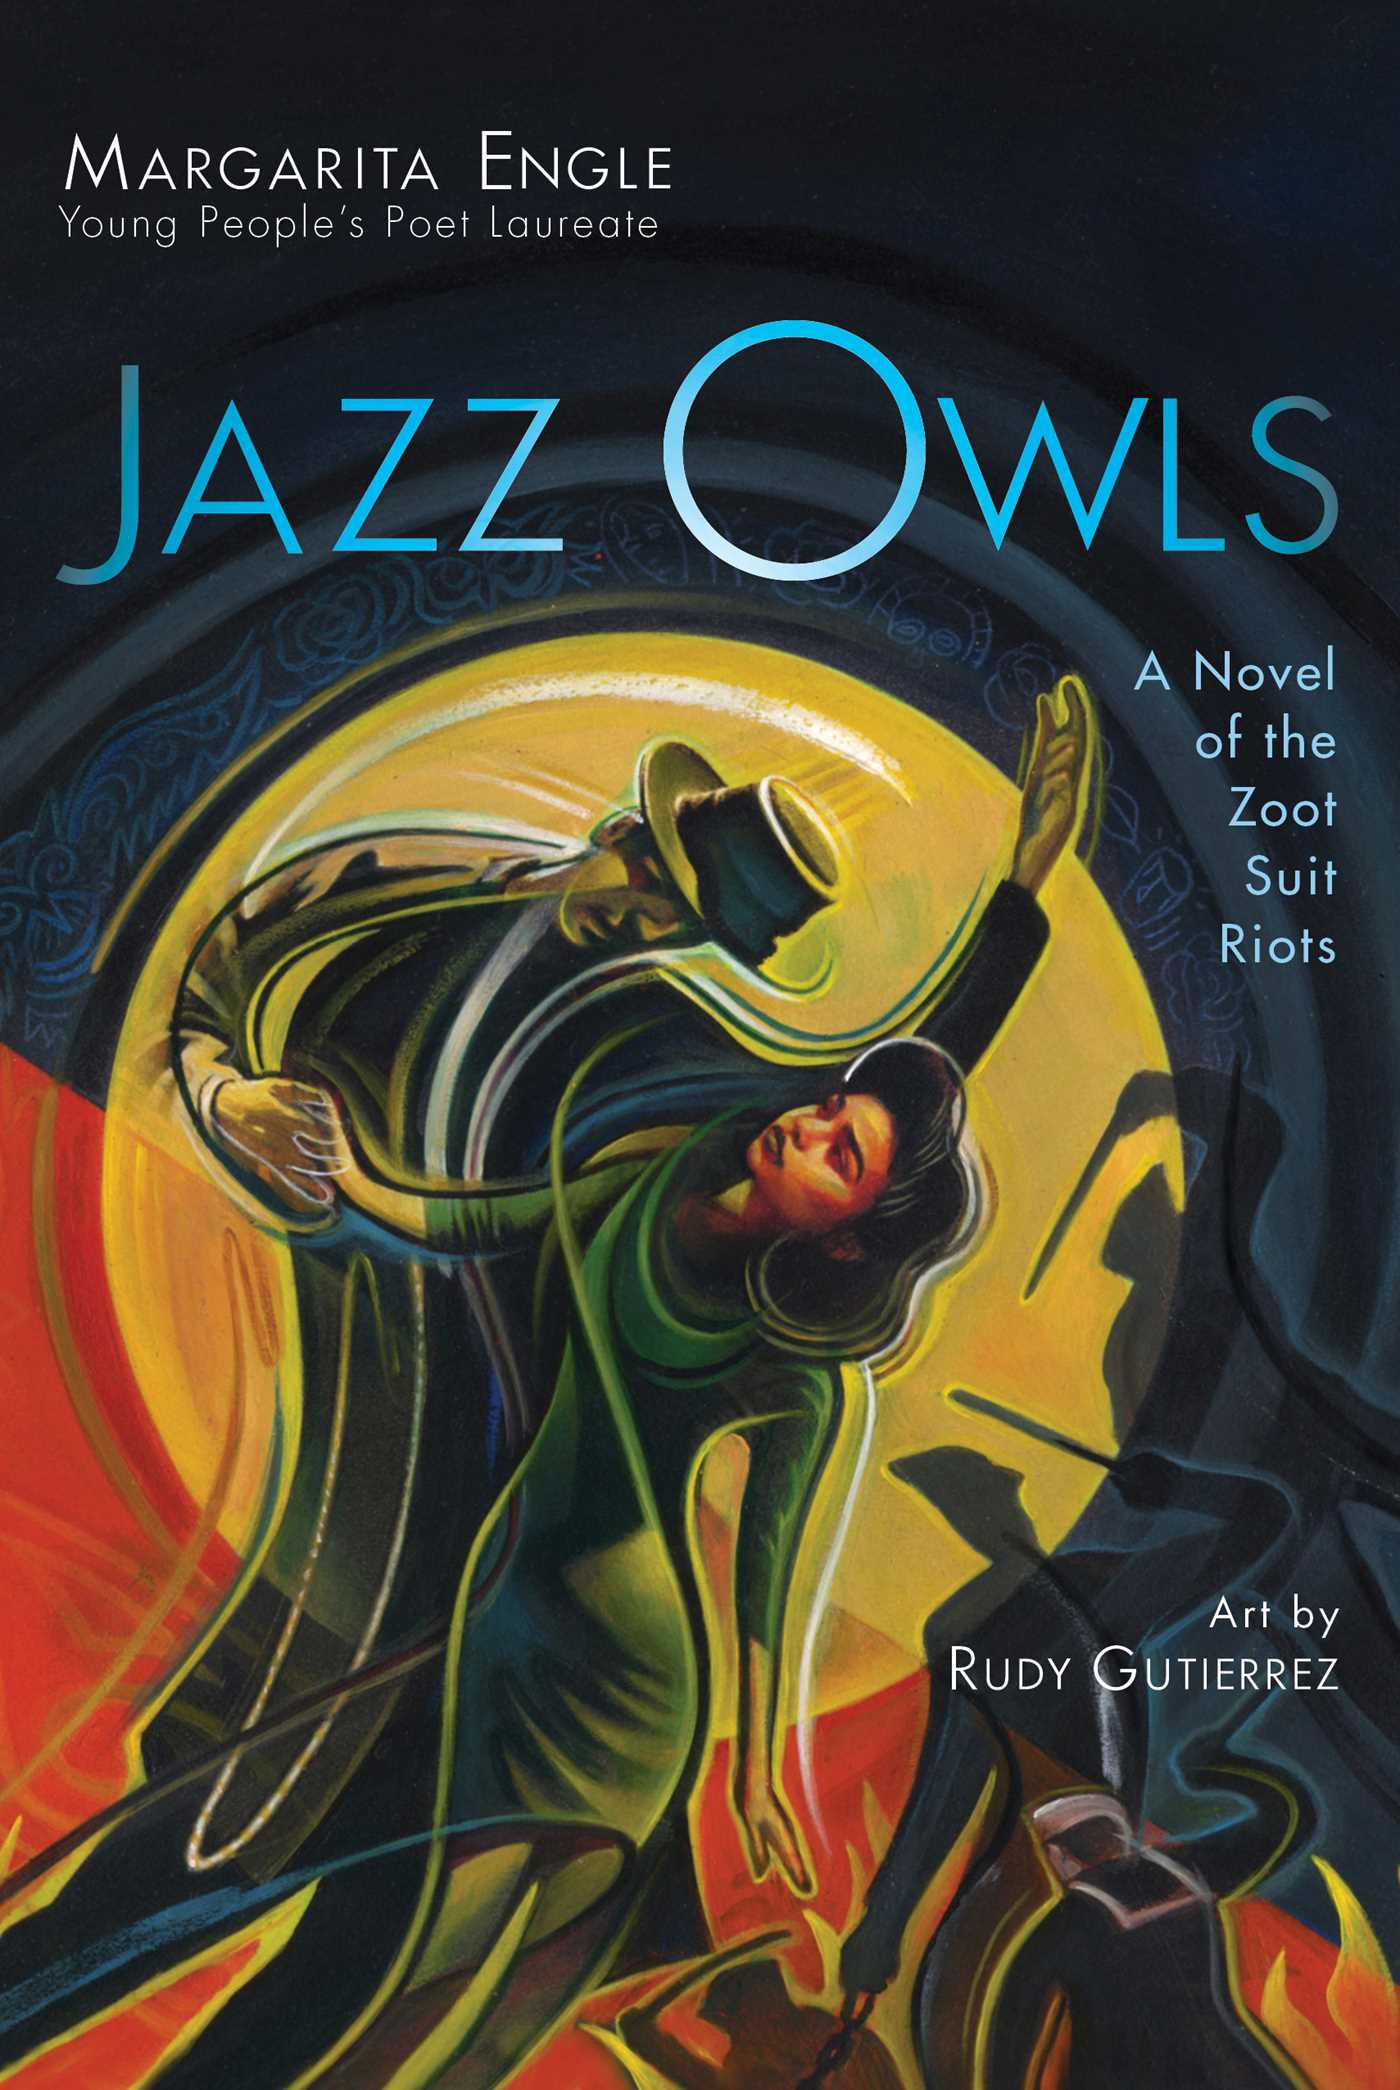 Jazz owls 9781534409439 hr